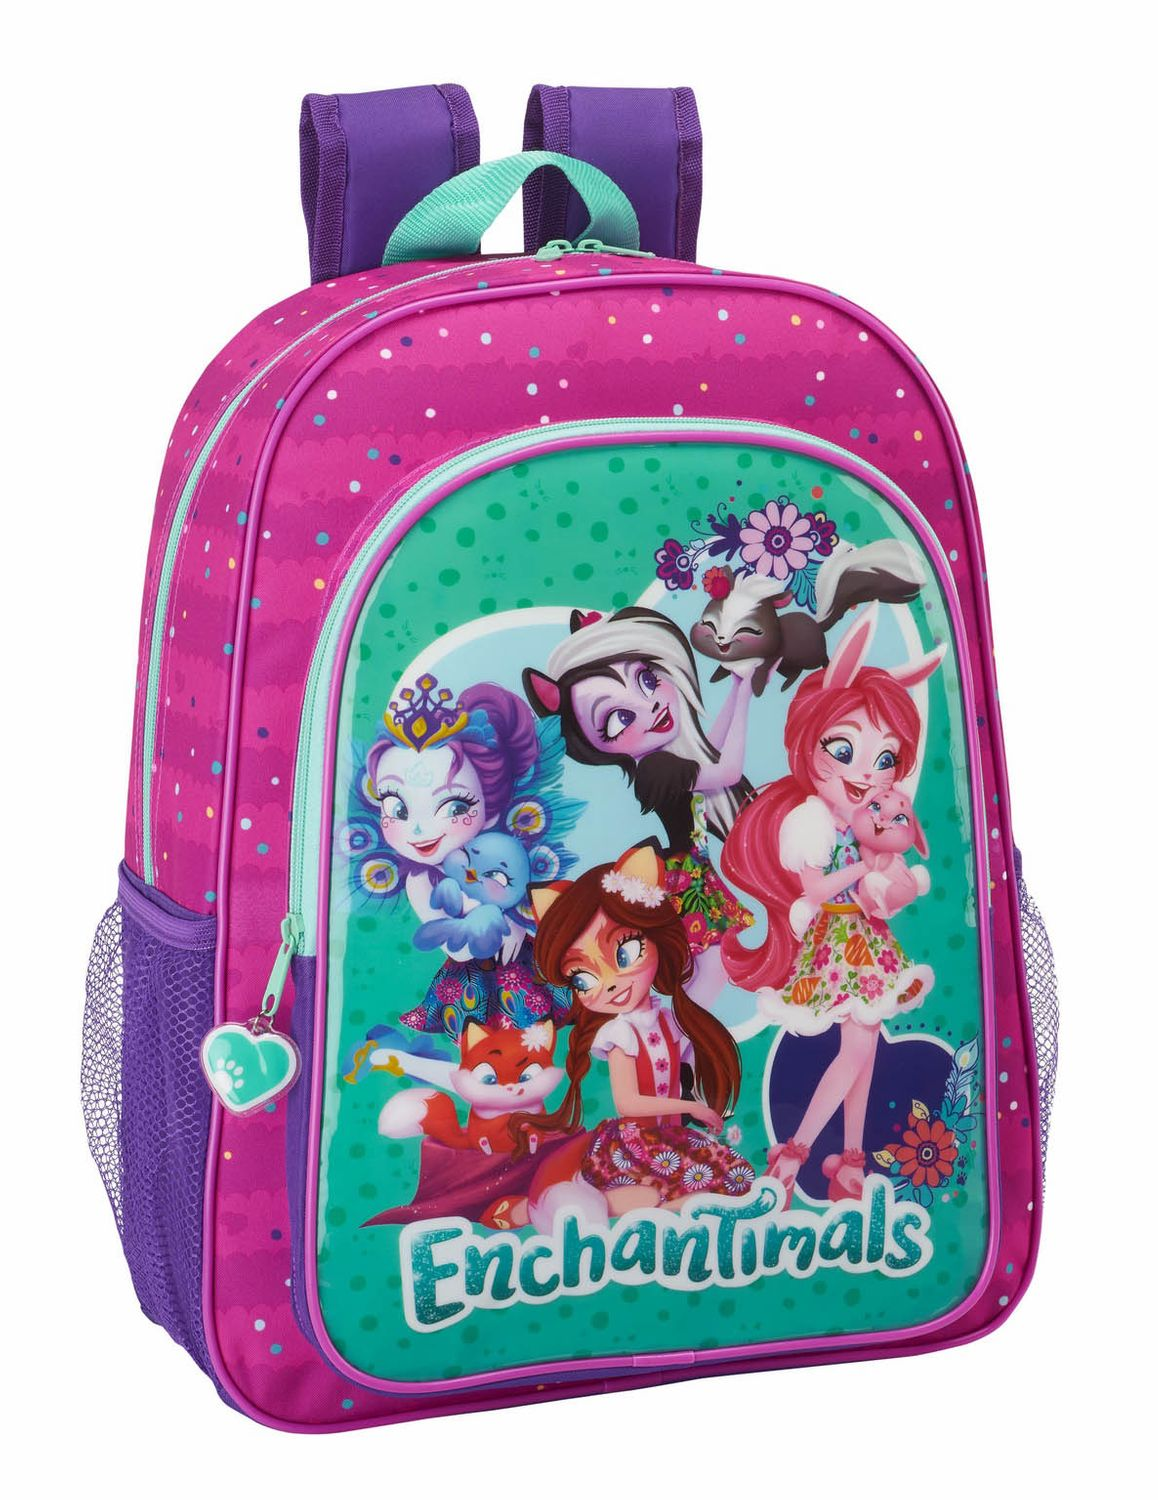 Mochila Grande Enchantimals 42cm